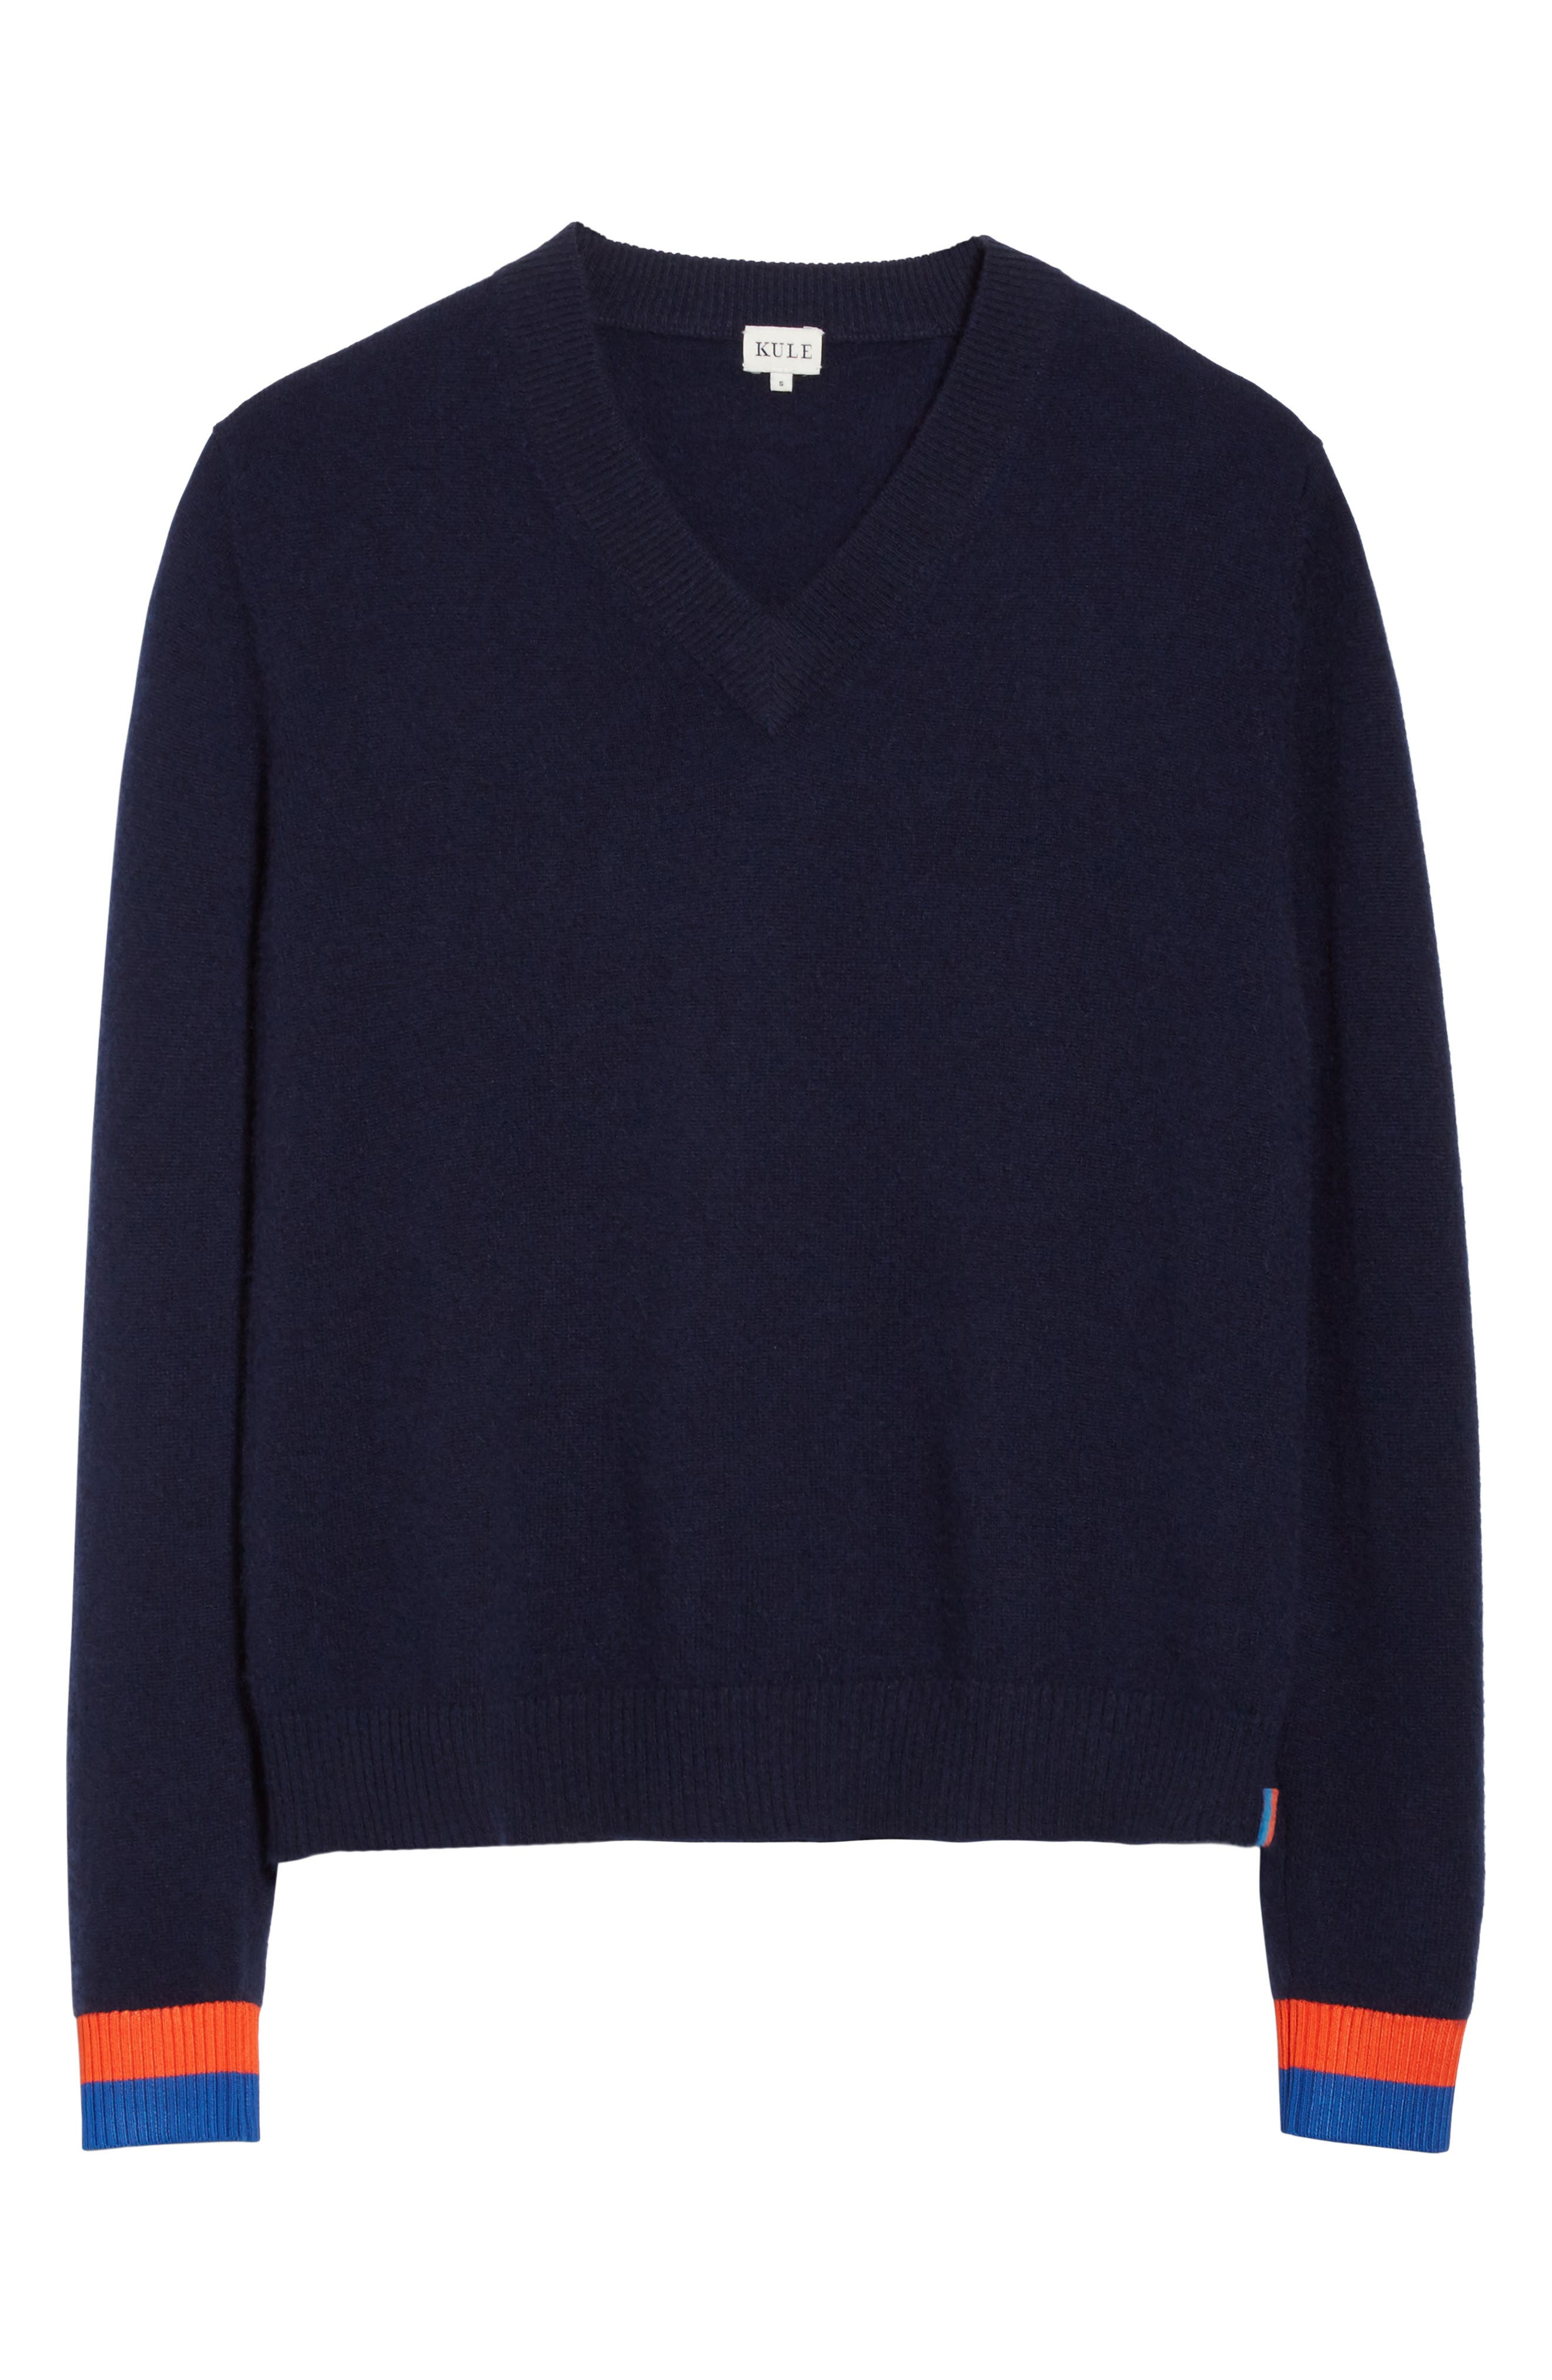 Cashmere Sweater,                             Alternate thumbnail 6, color,                             Navy